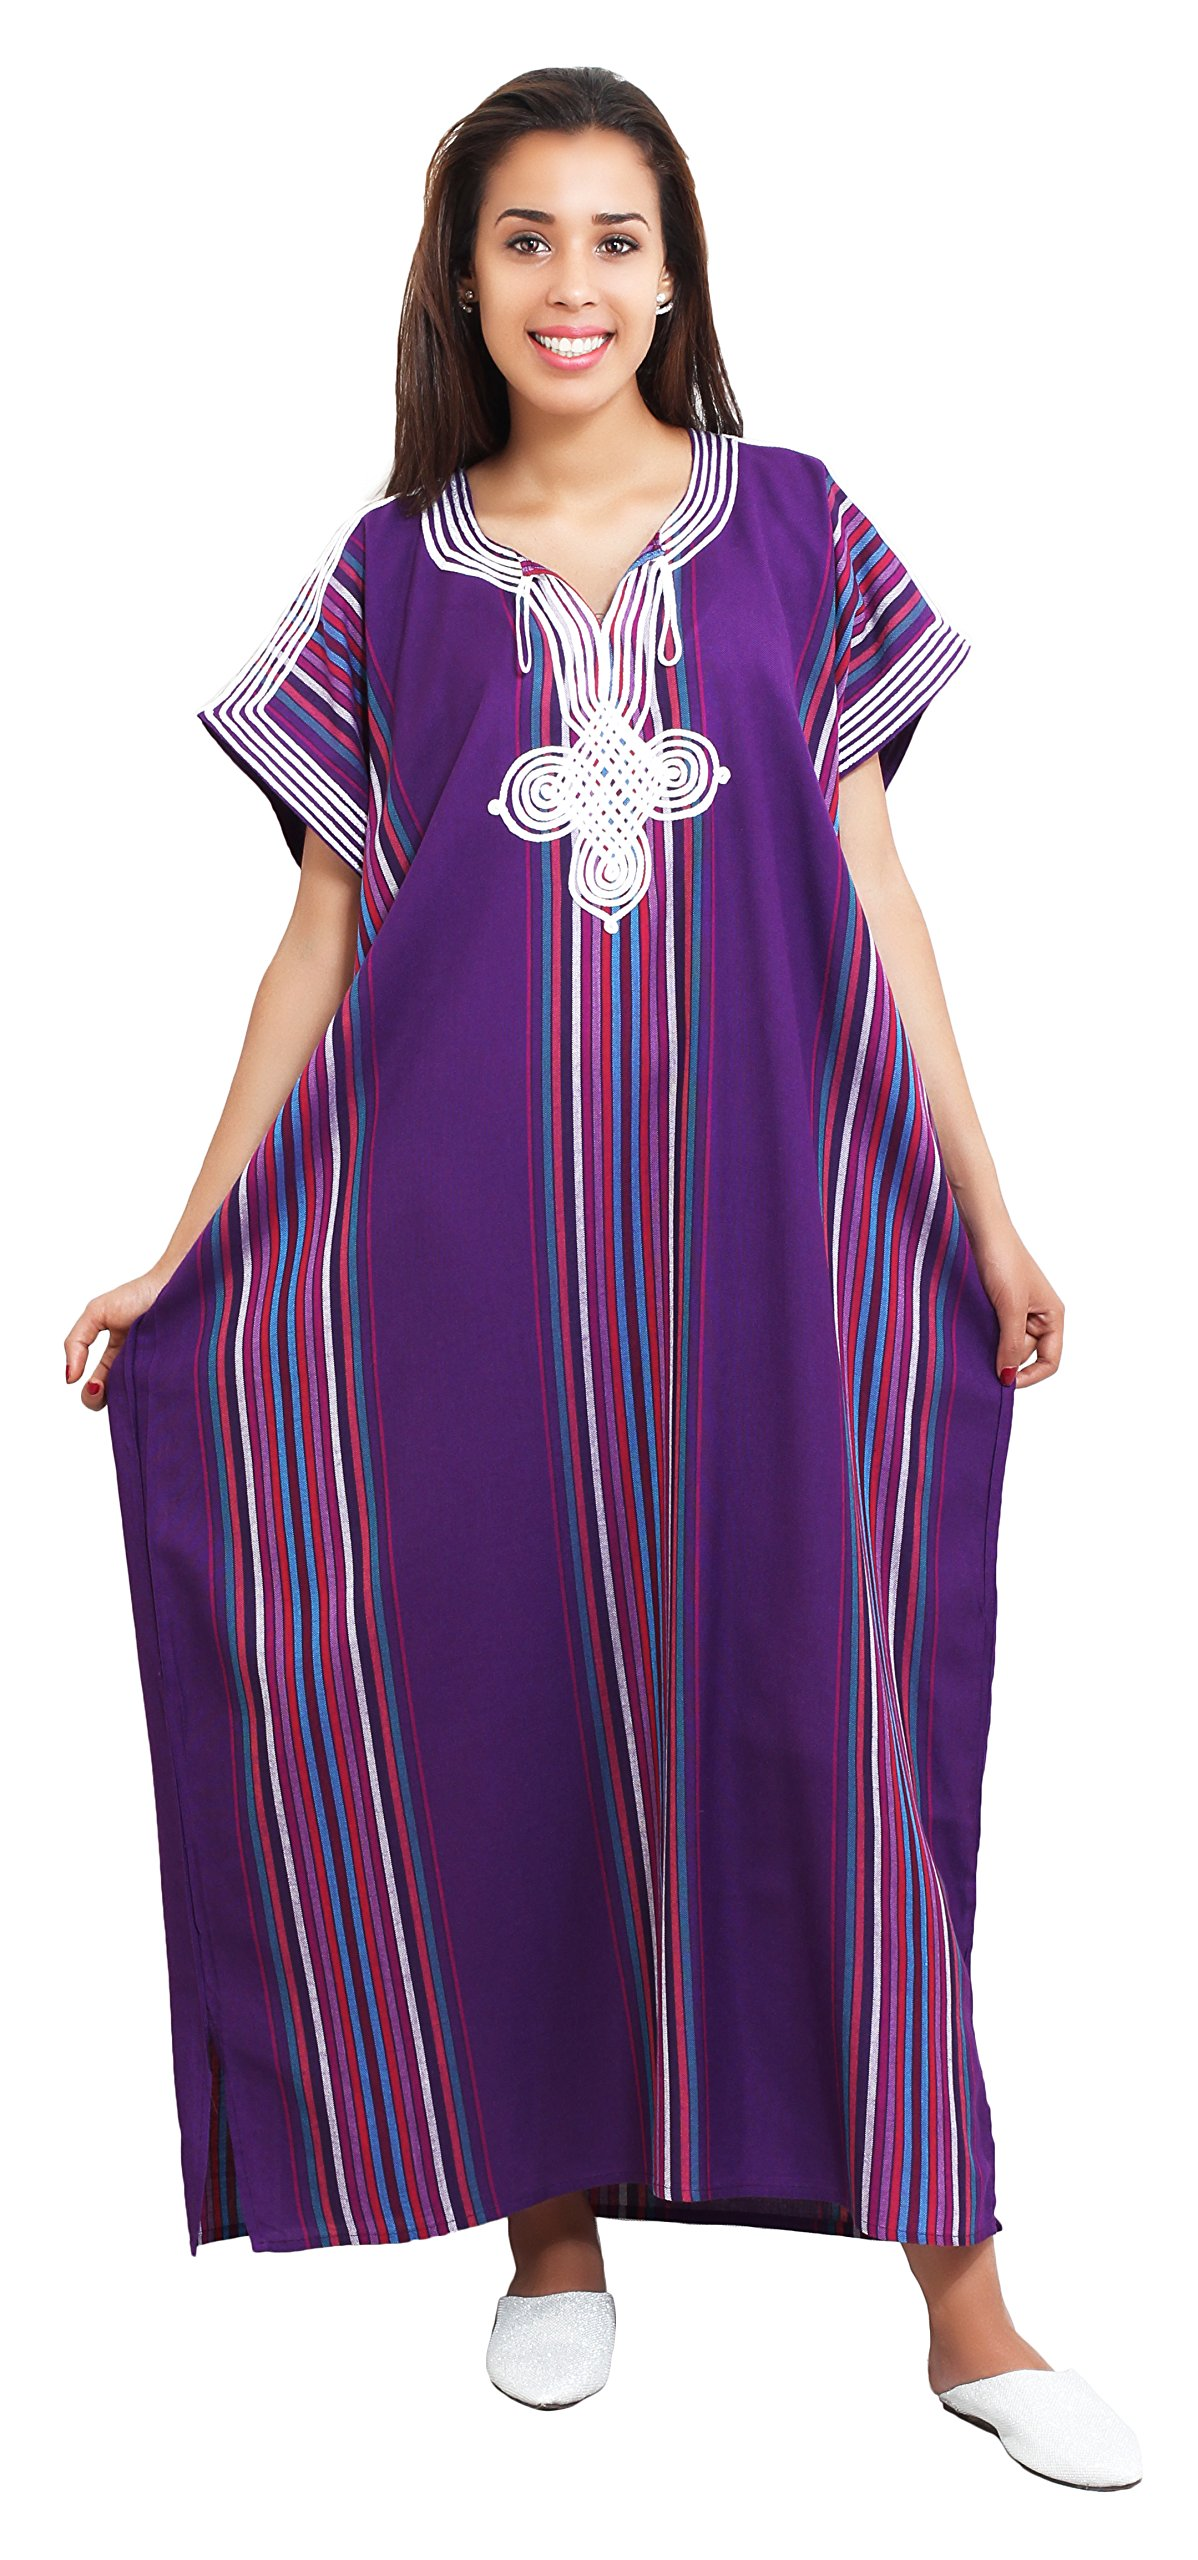 Moroccan Caftans Women Light Weight Linen Handmade One Size SMALL to LARGE Cover-up Lounge wear Ethnic Design Purple